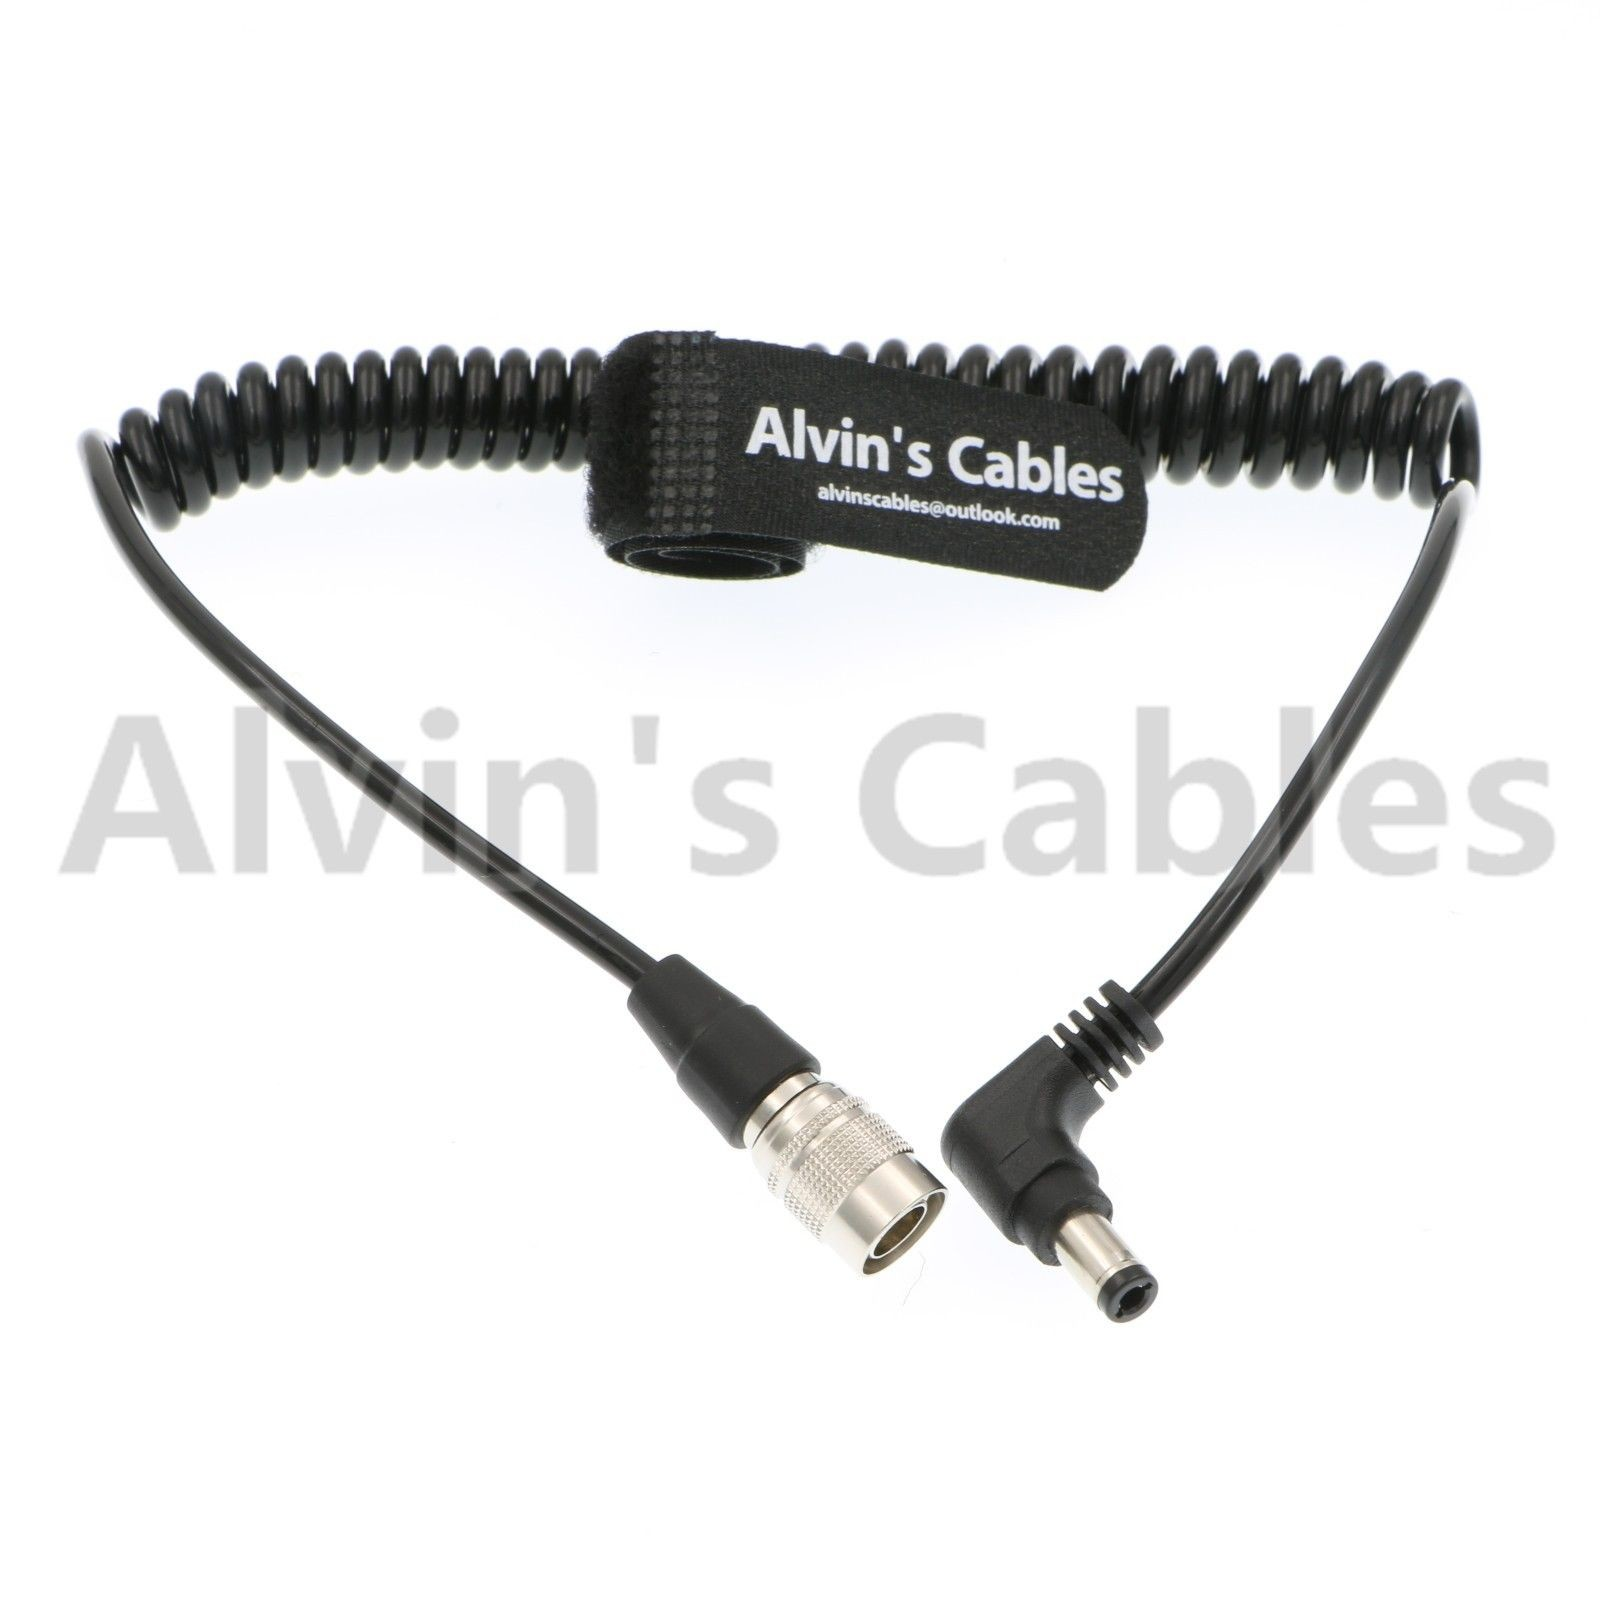 Alvins Cables 4 Pin Hirose Male to Right Angle DC Jack for Sound Devices 633//644//688 Zoom F8 Blackmagic Cinema Camera 4K